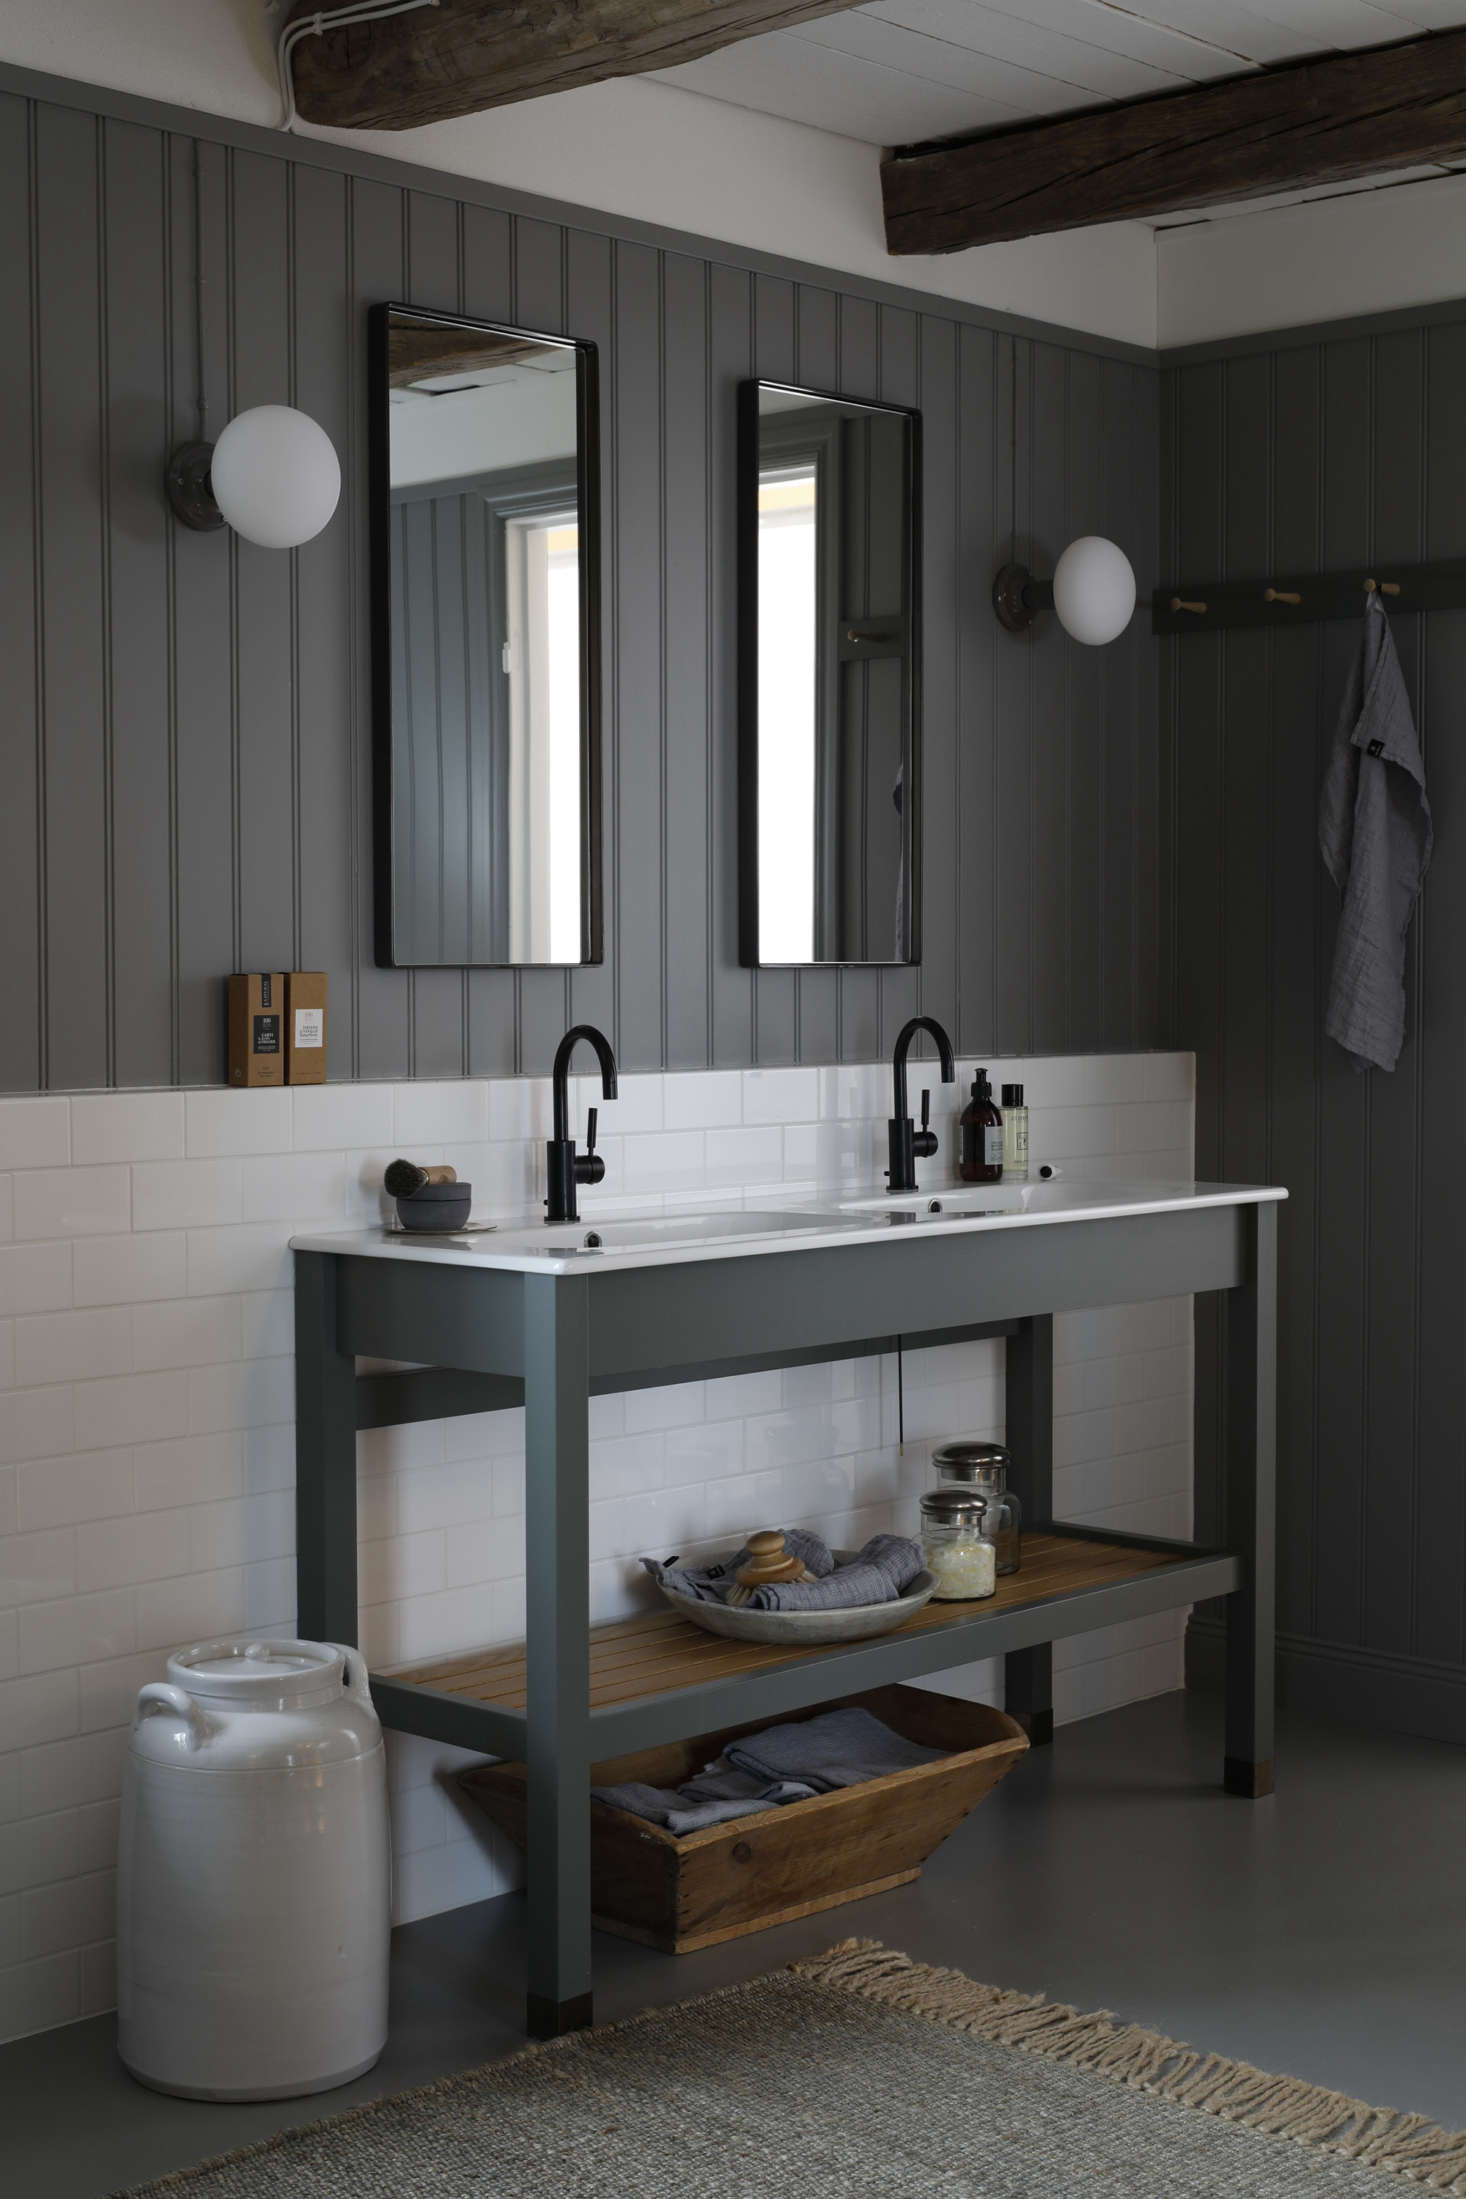 This Dream Dressing Room from Sweden is also a dream bathroom. Photograph courtesy of Kvänum.